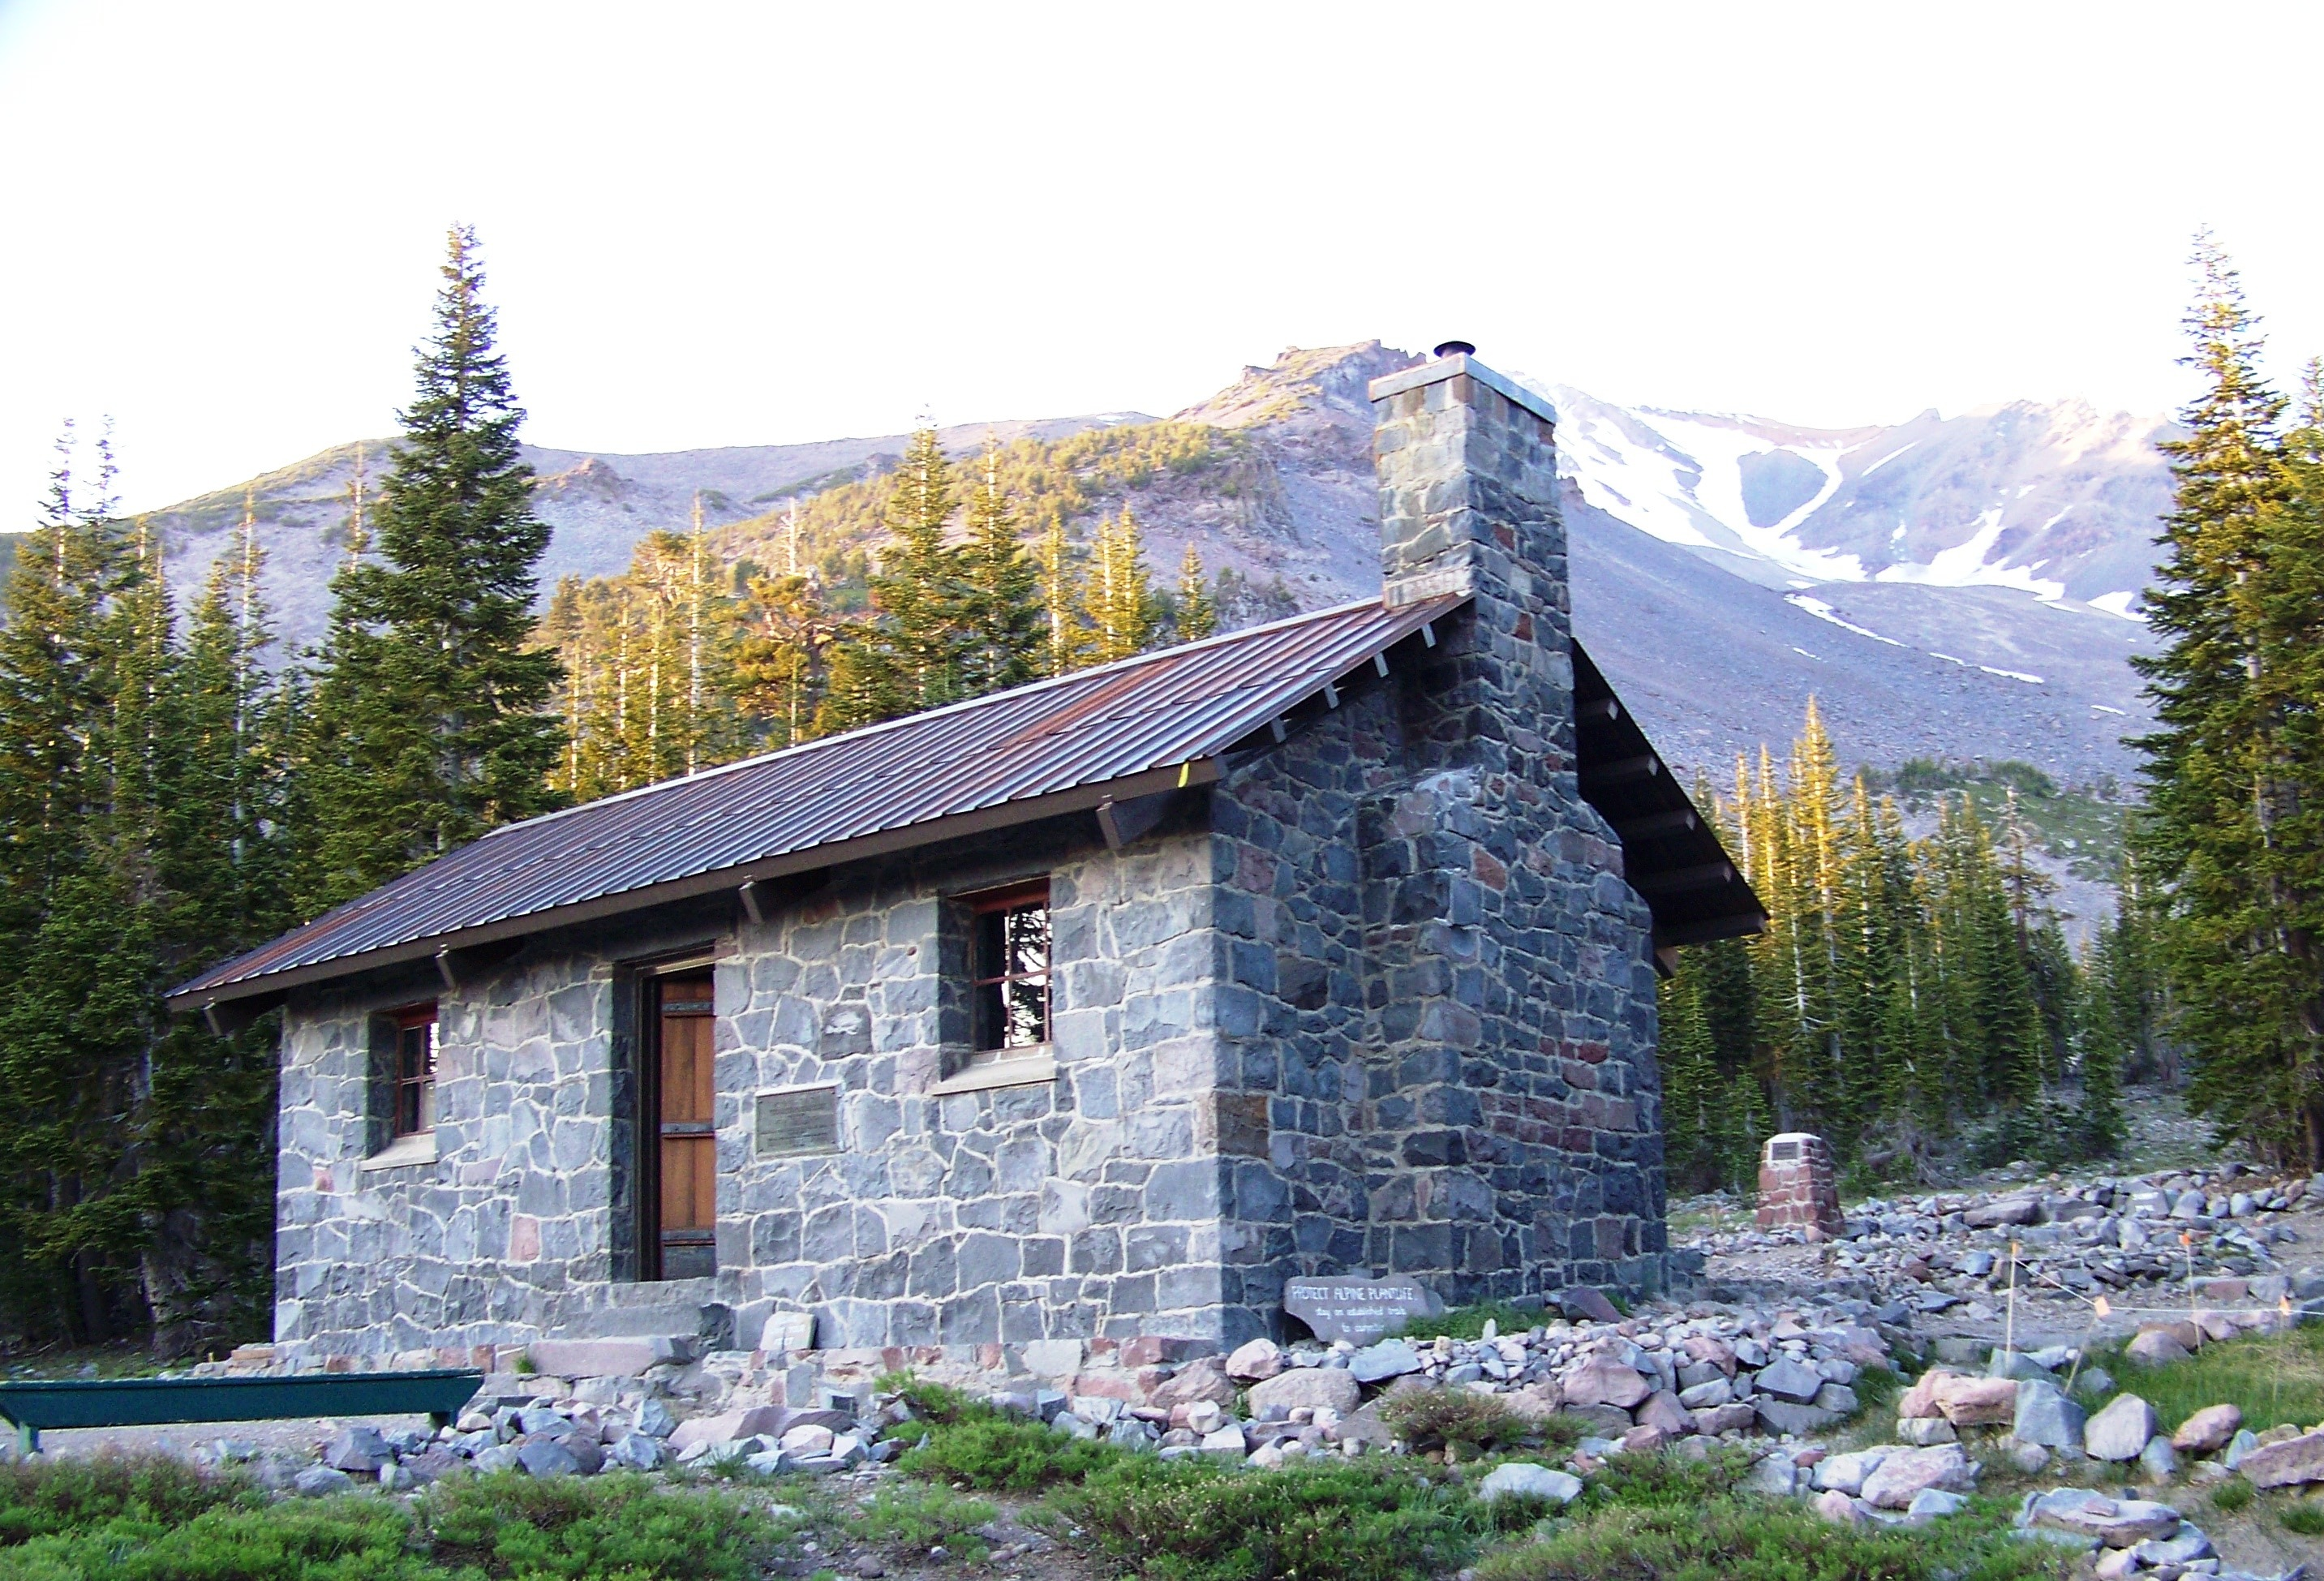 photo of Shasta Alpine Lodge at Horse Camp on Mount Shasta, CA